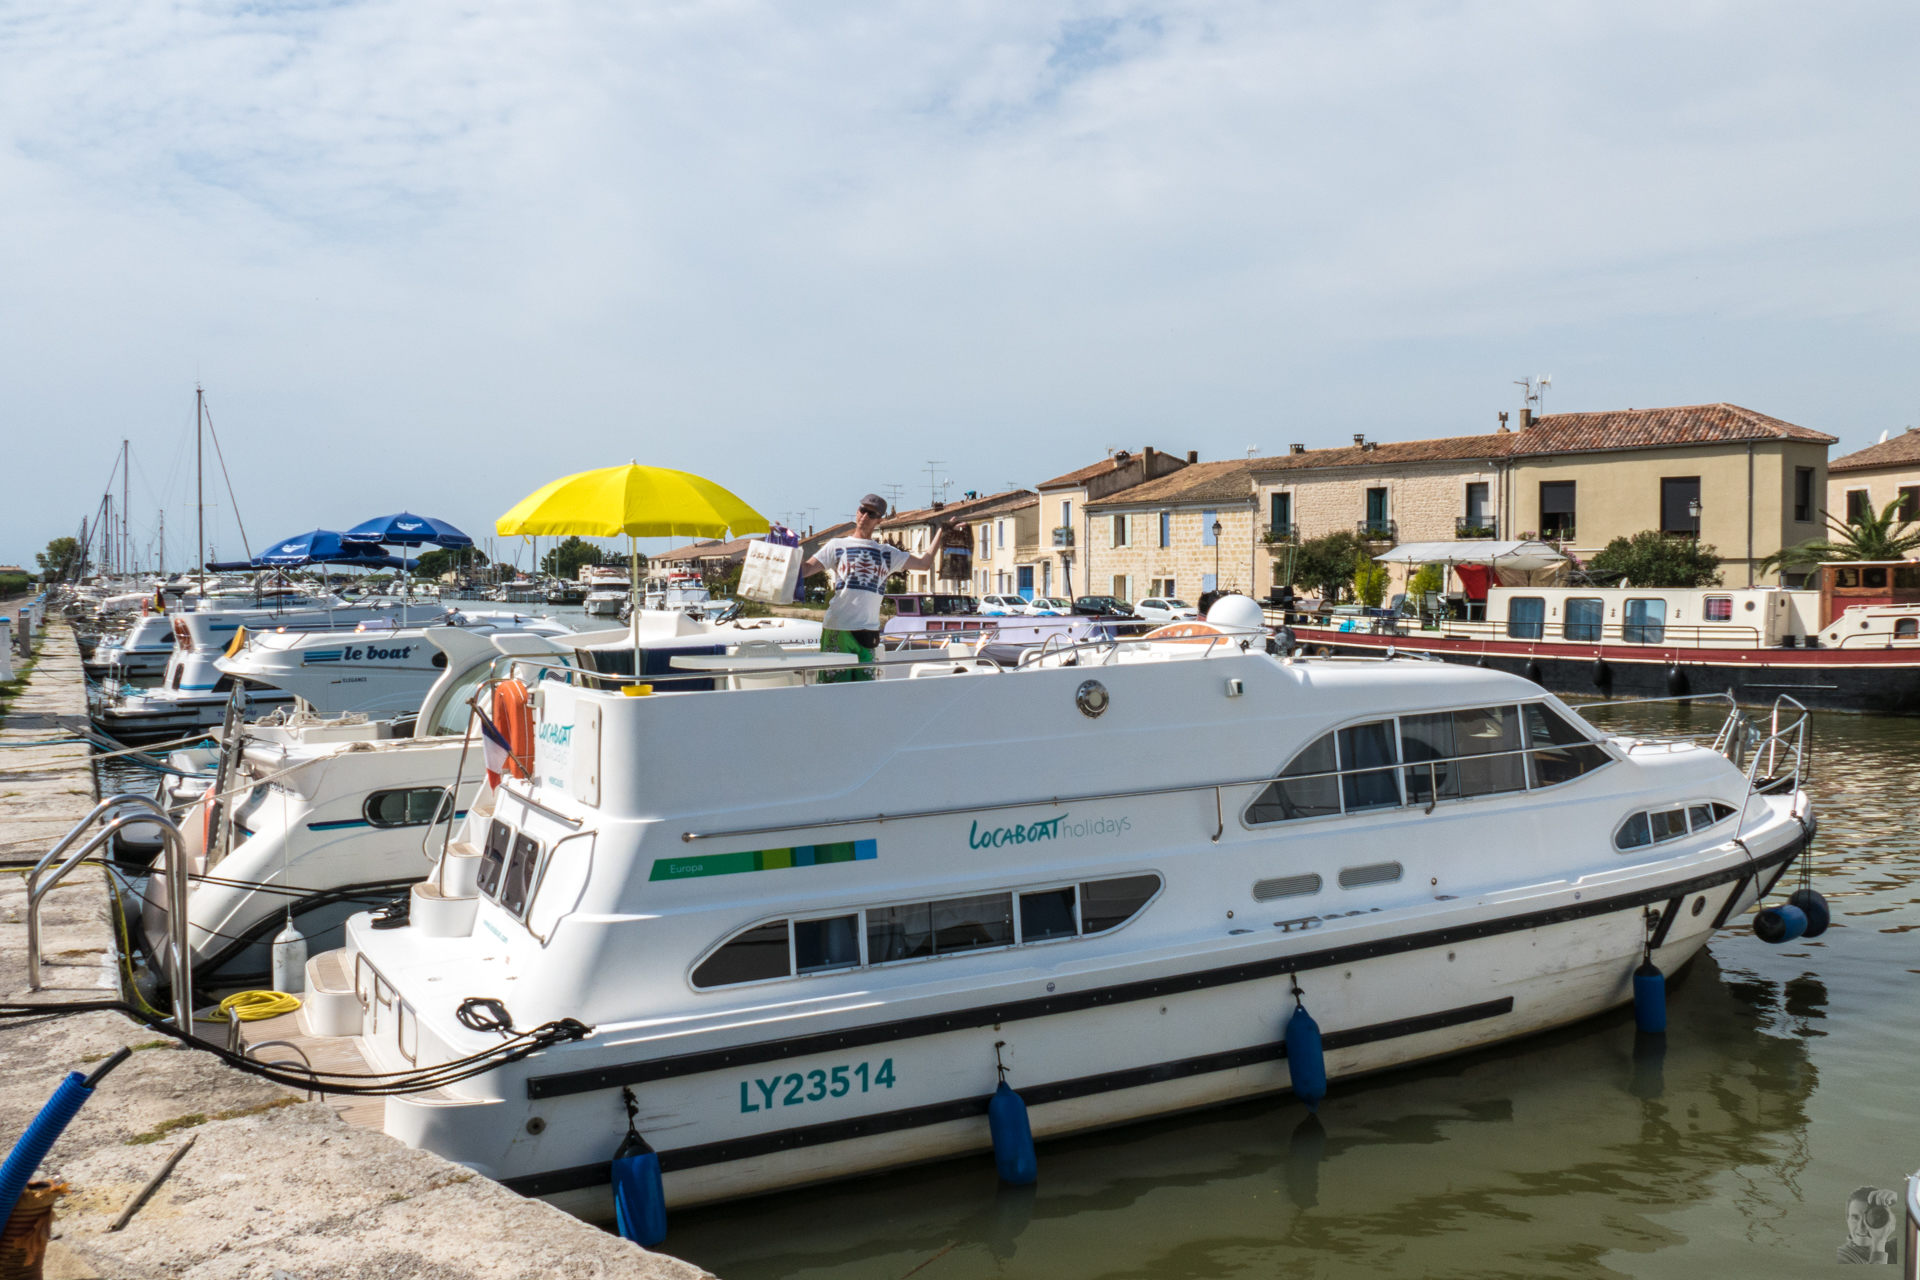 Hausbootferien 2015, Lattes-Europa 600 in Aigues-Mortes